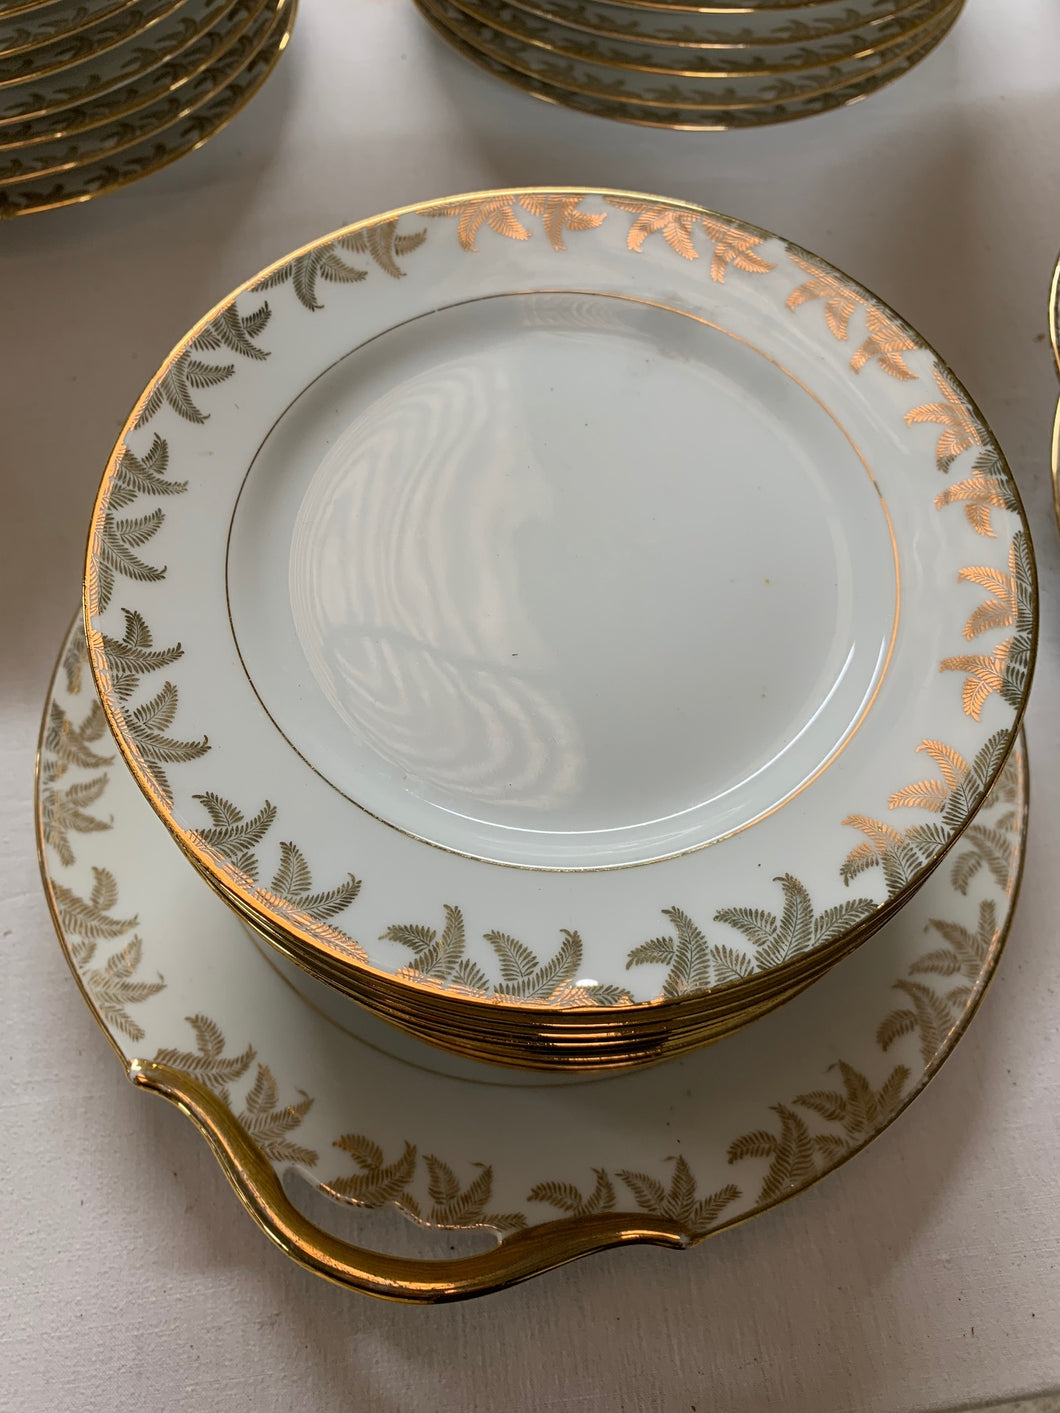 SOLD - vintage limoges set